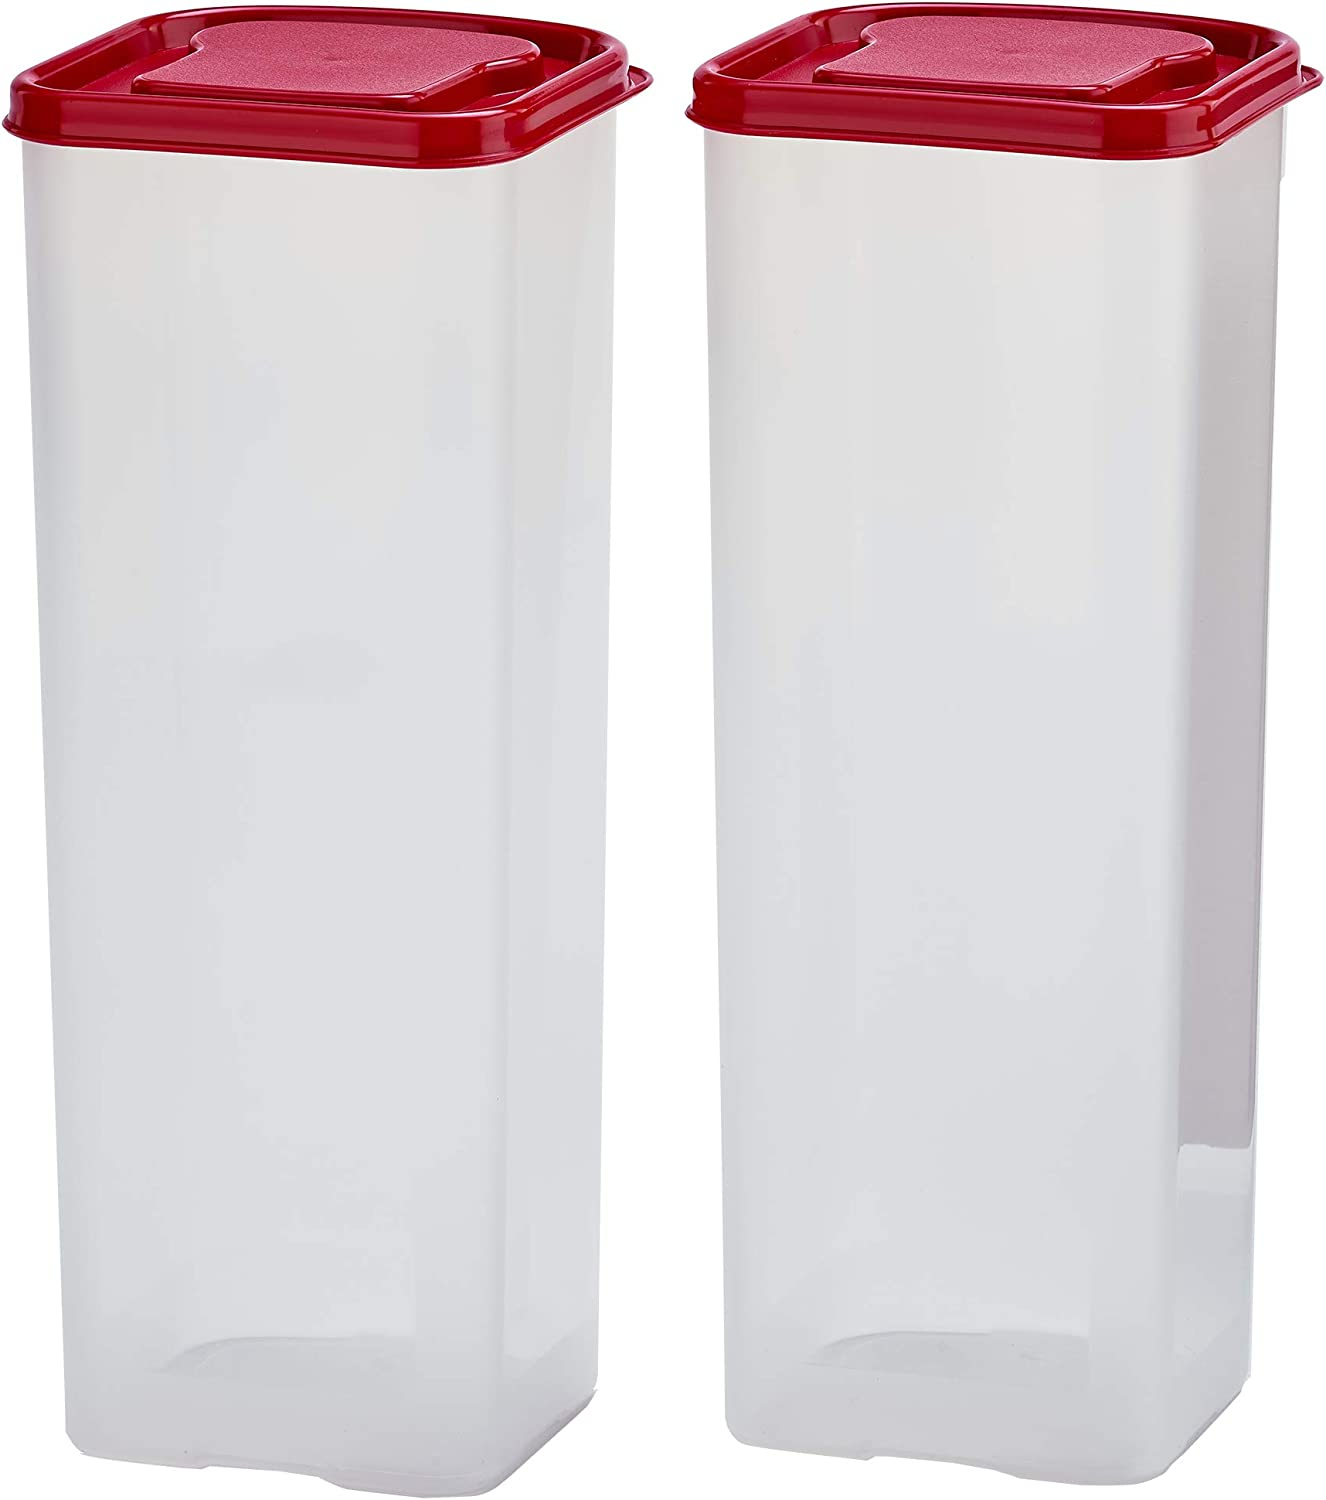 Buddeez Bread Buddy 2 Pack Set w/Red Lids Dispenser, 2 Pieces